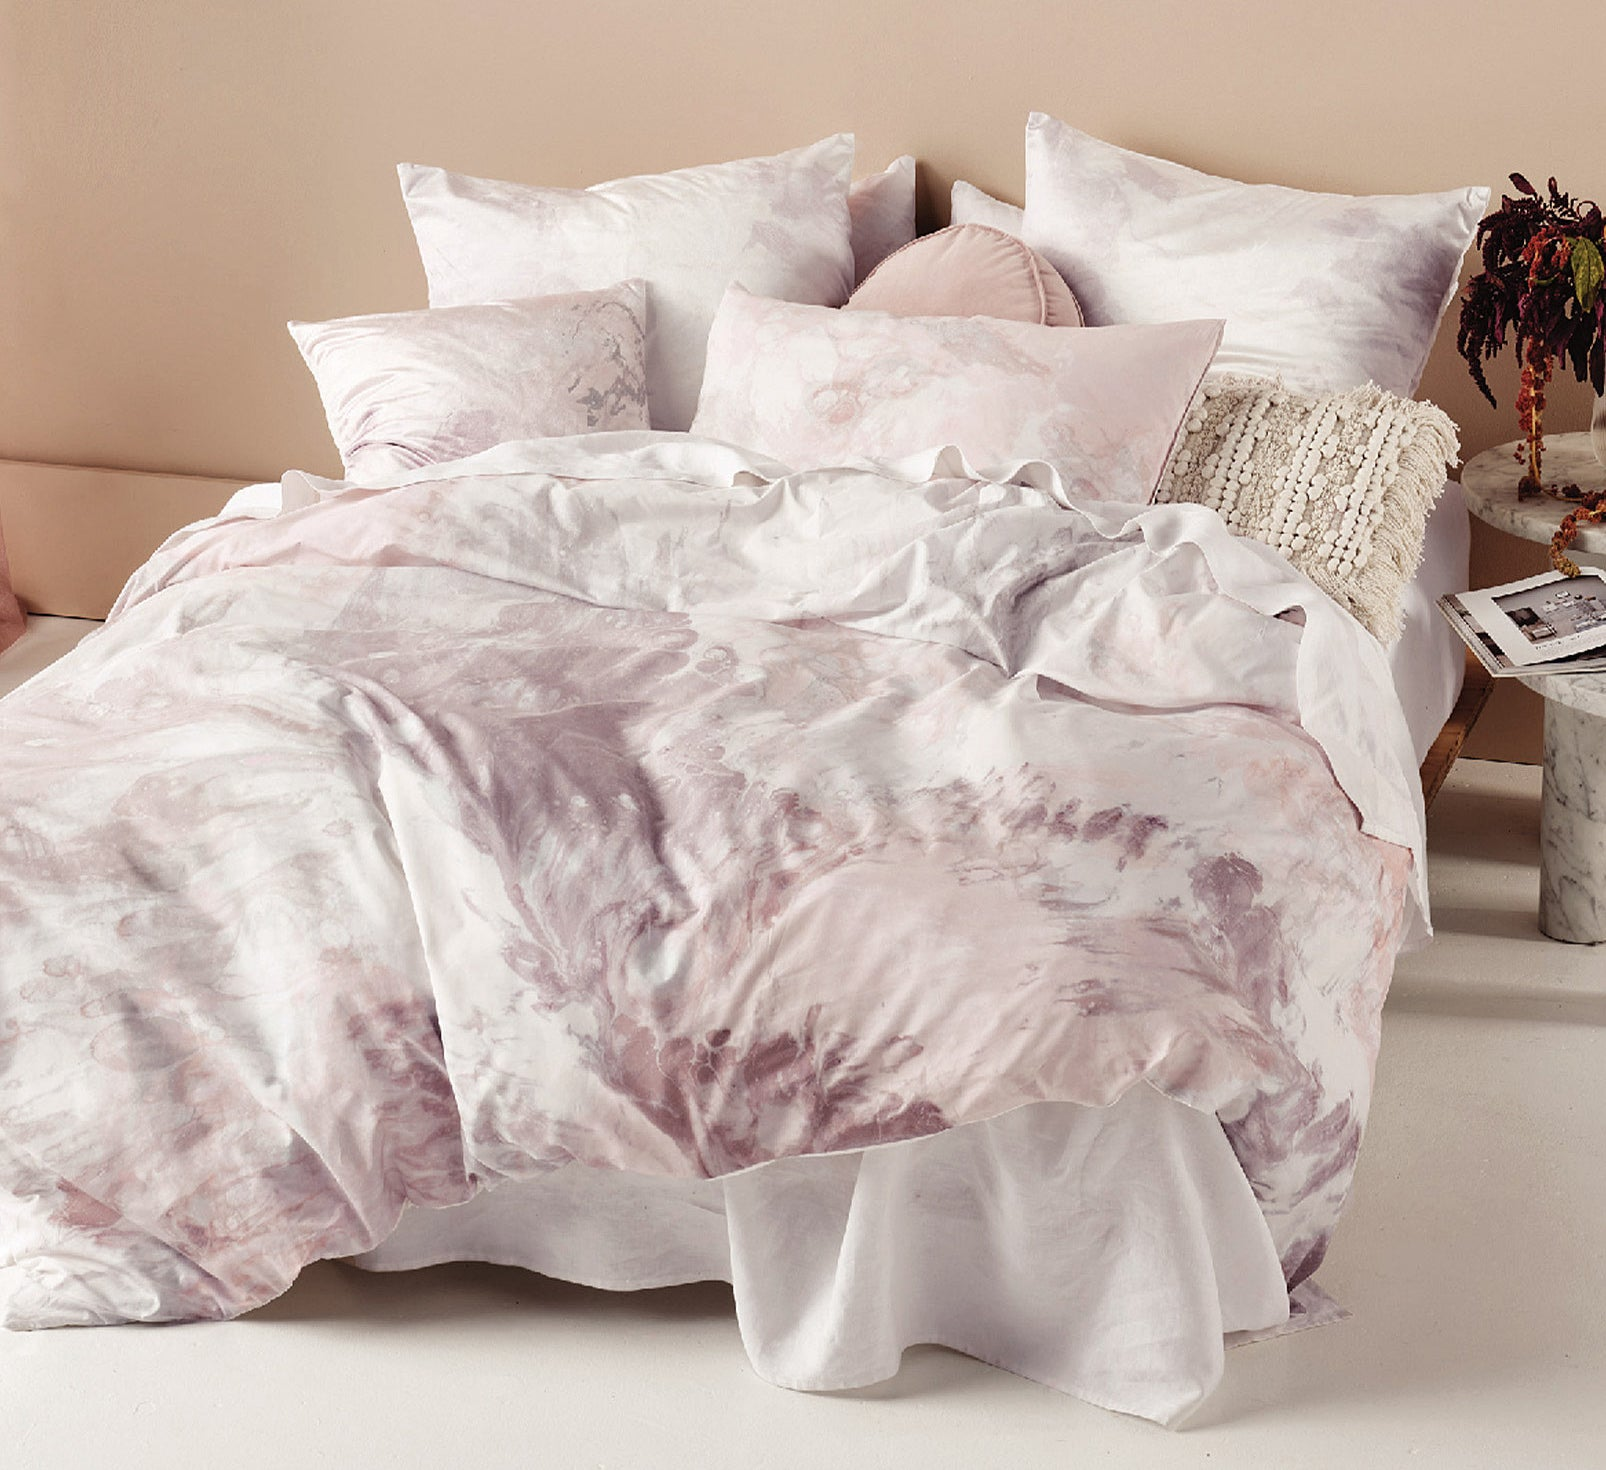 A duvet on a bed with tons of pillows on it